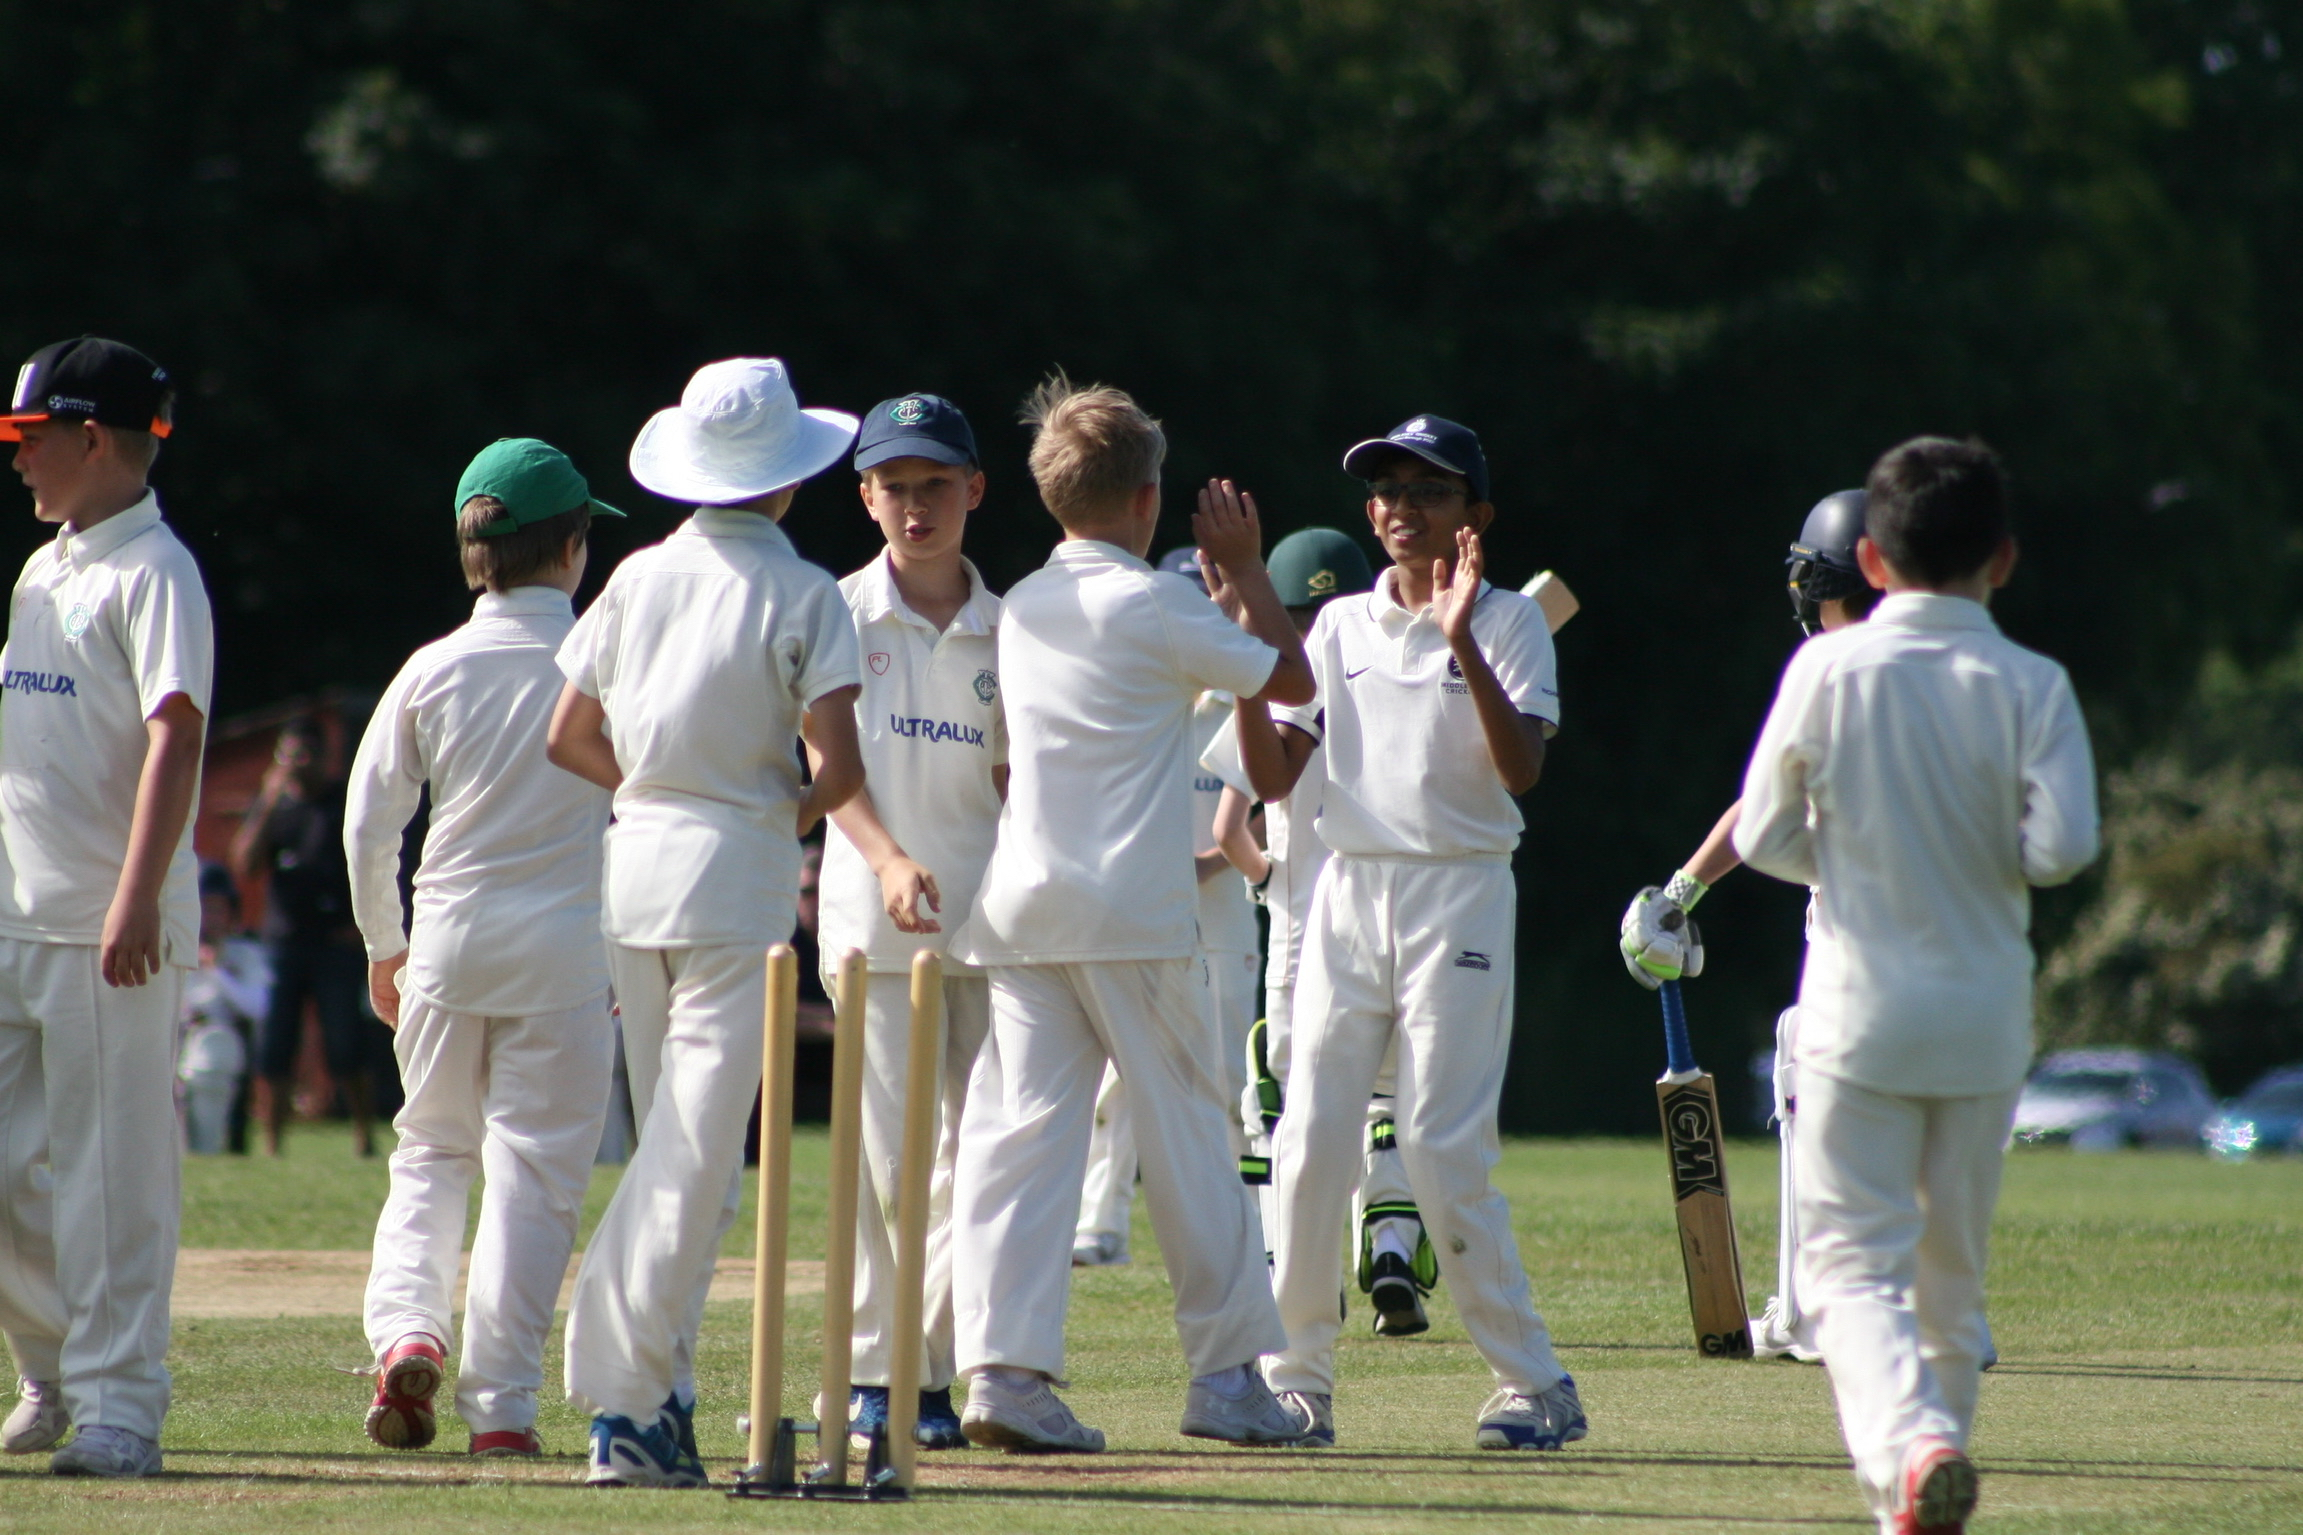 Teddington celebrate a Swiss wicket